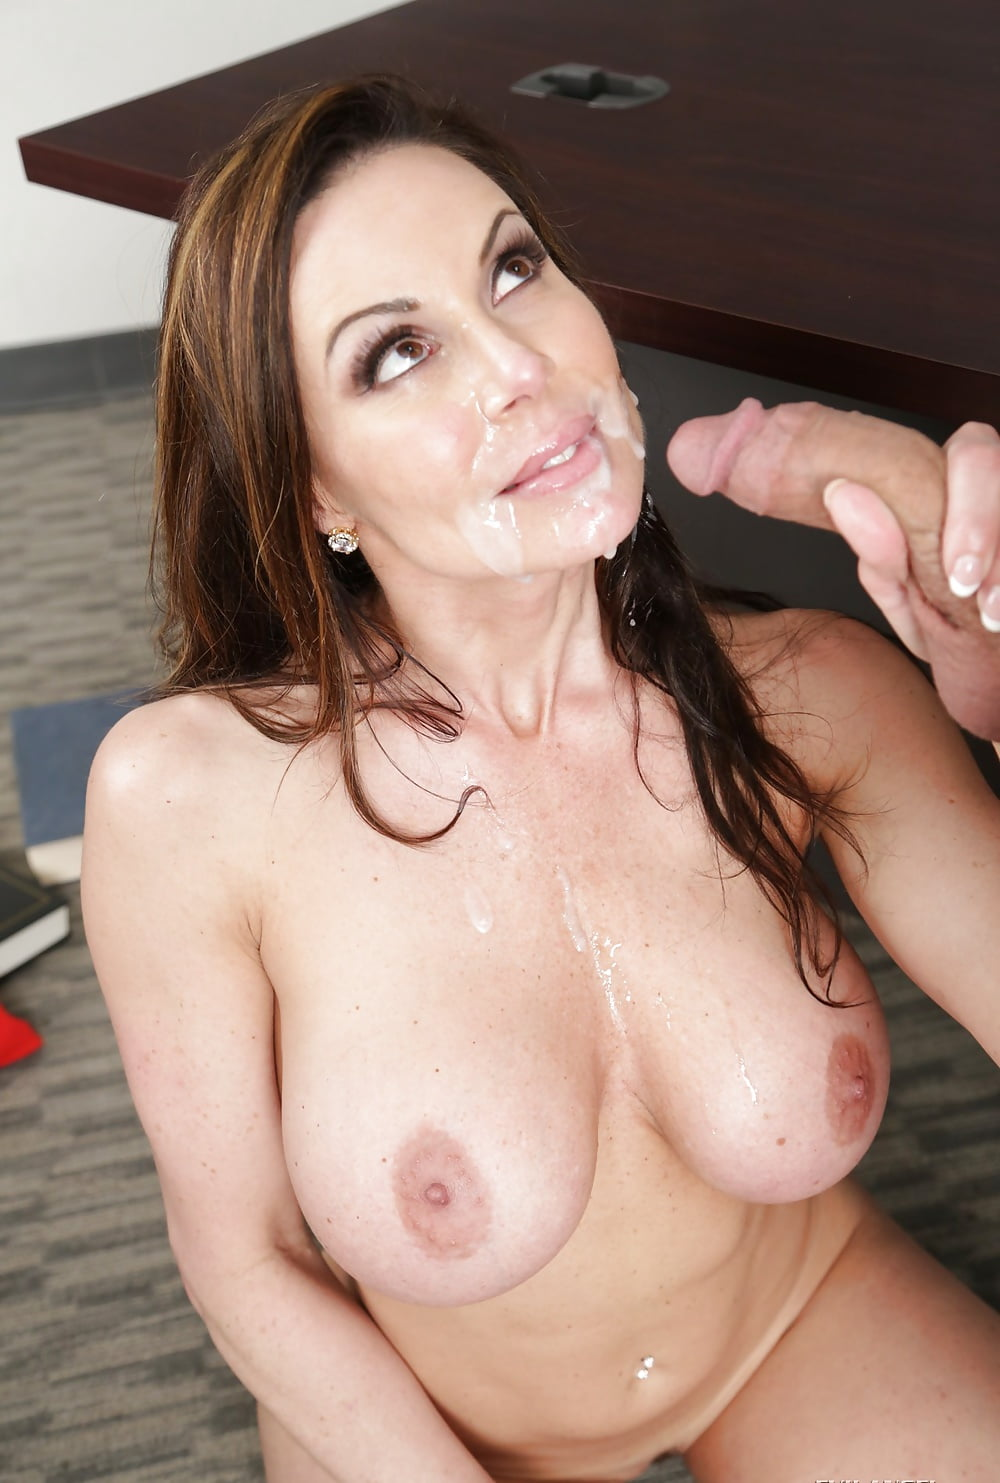 Hot milf india summer takes cumshot to her belly and arm pit